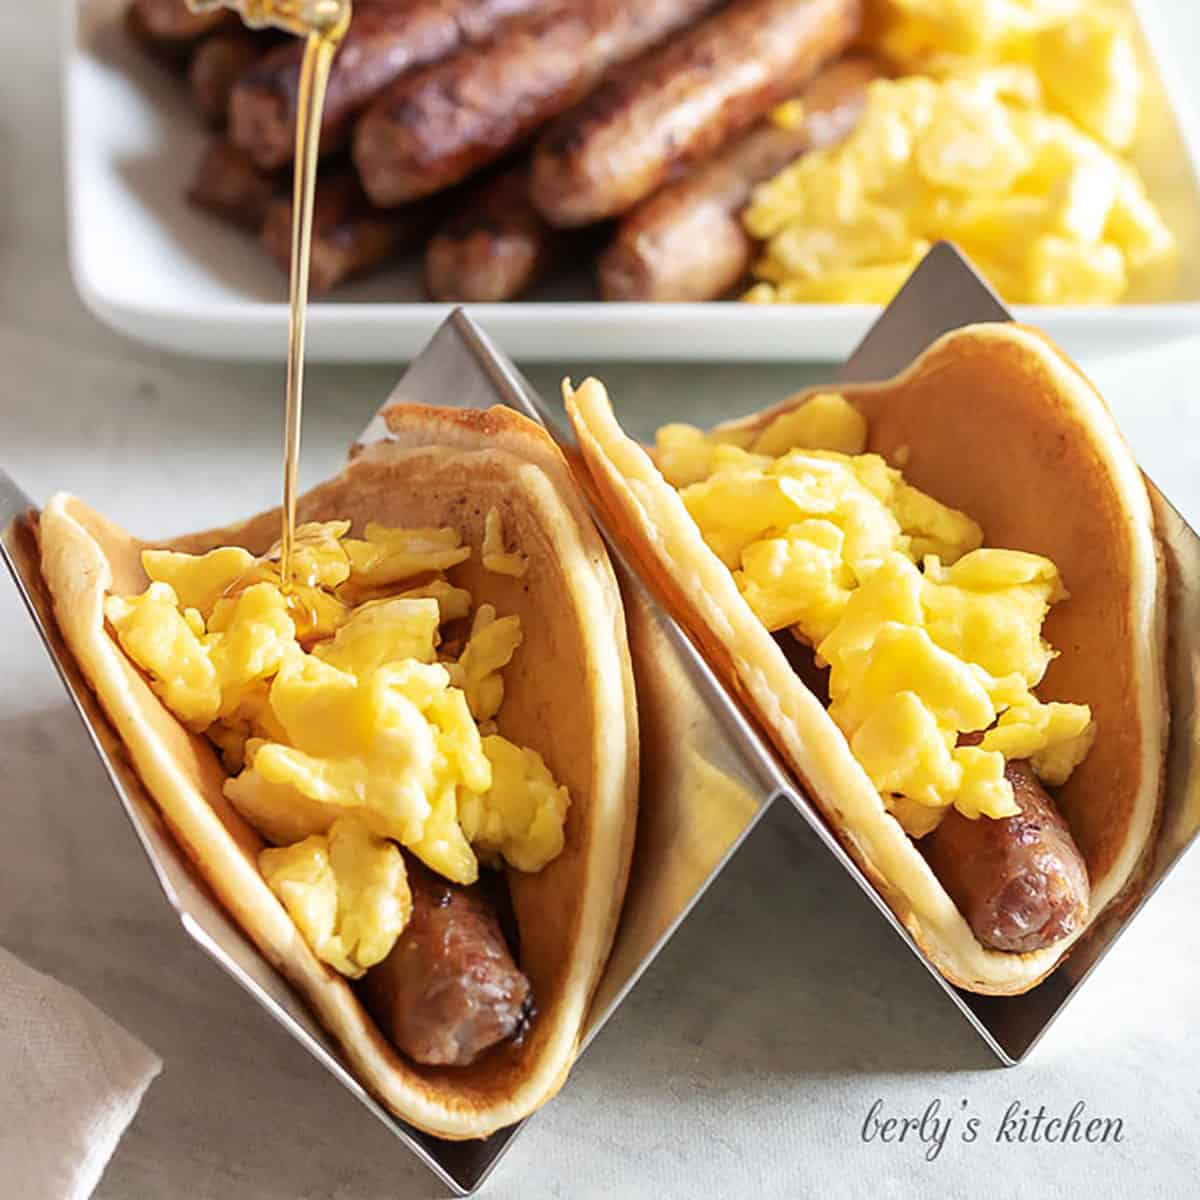 Two pancake breakfast tacos filled with sausage links and scrambled eggs being topped with syrup.